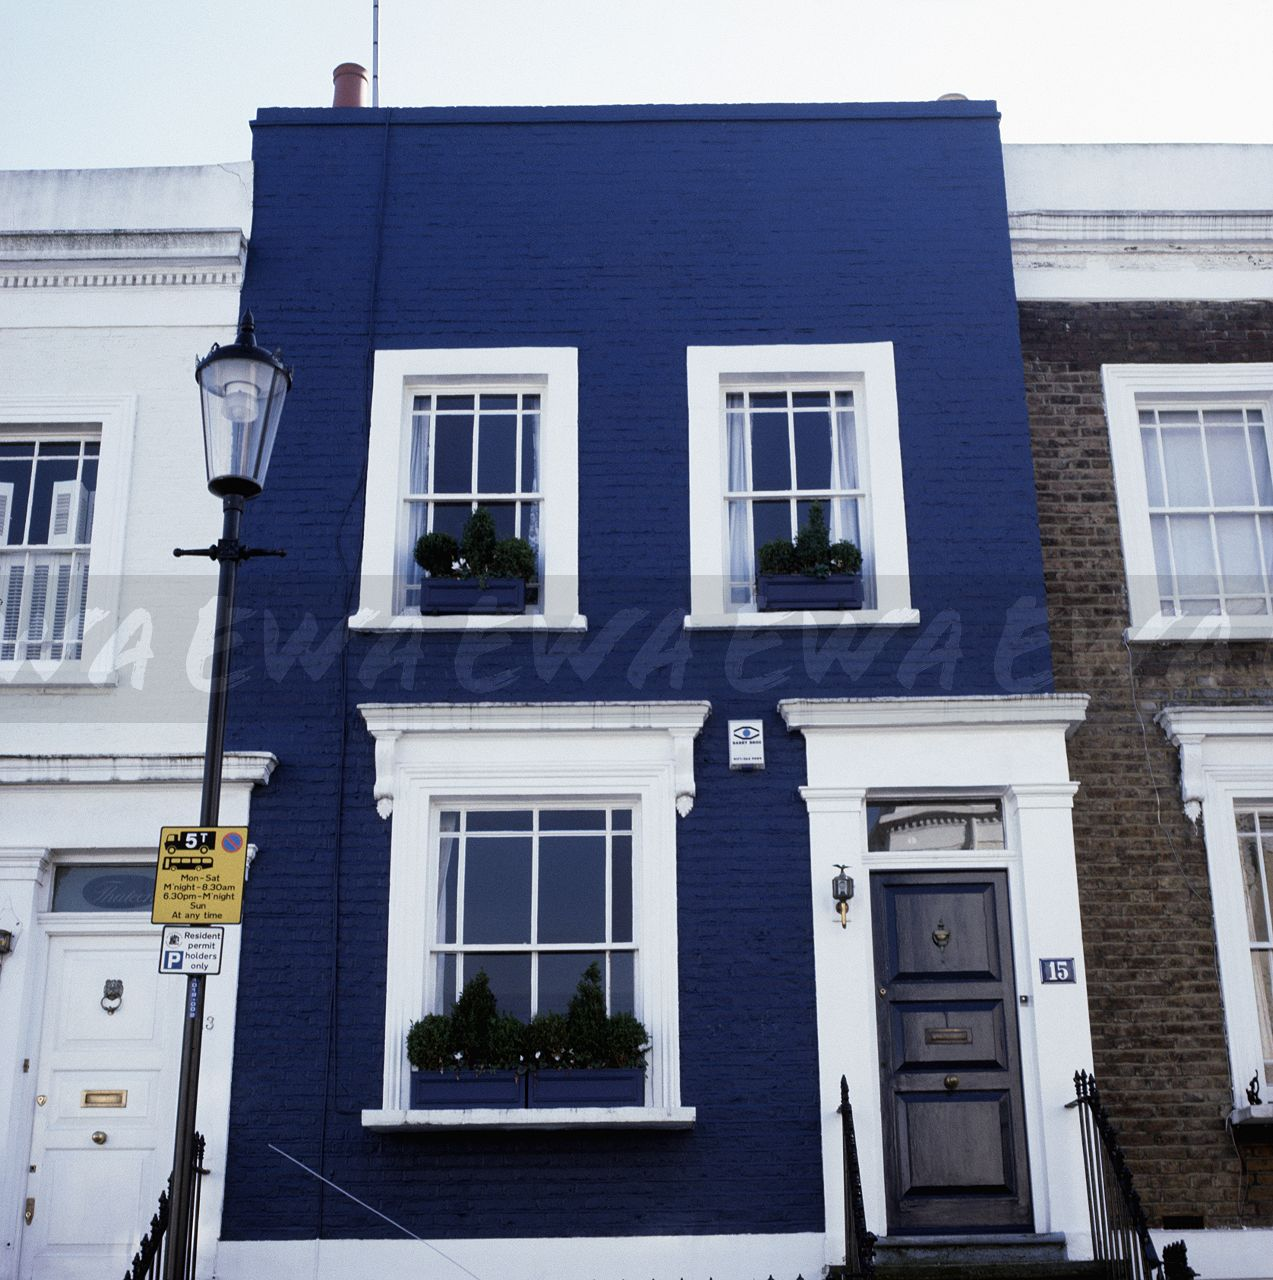 White-painted window and door frmes of dark blue traditional terraced ...: https://www.ewastock.com/image/65260